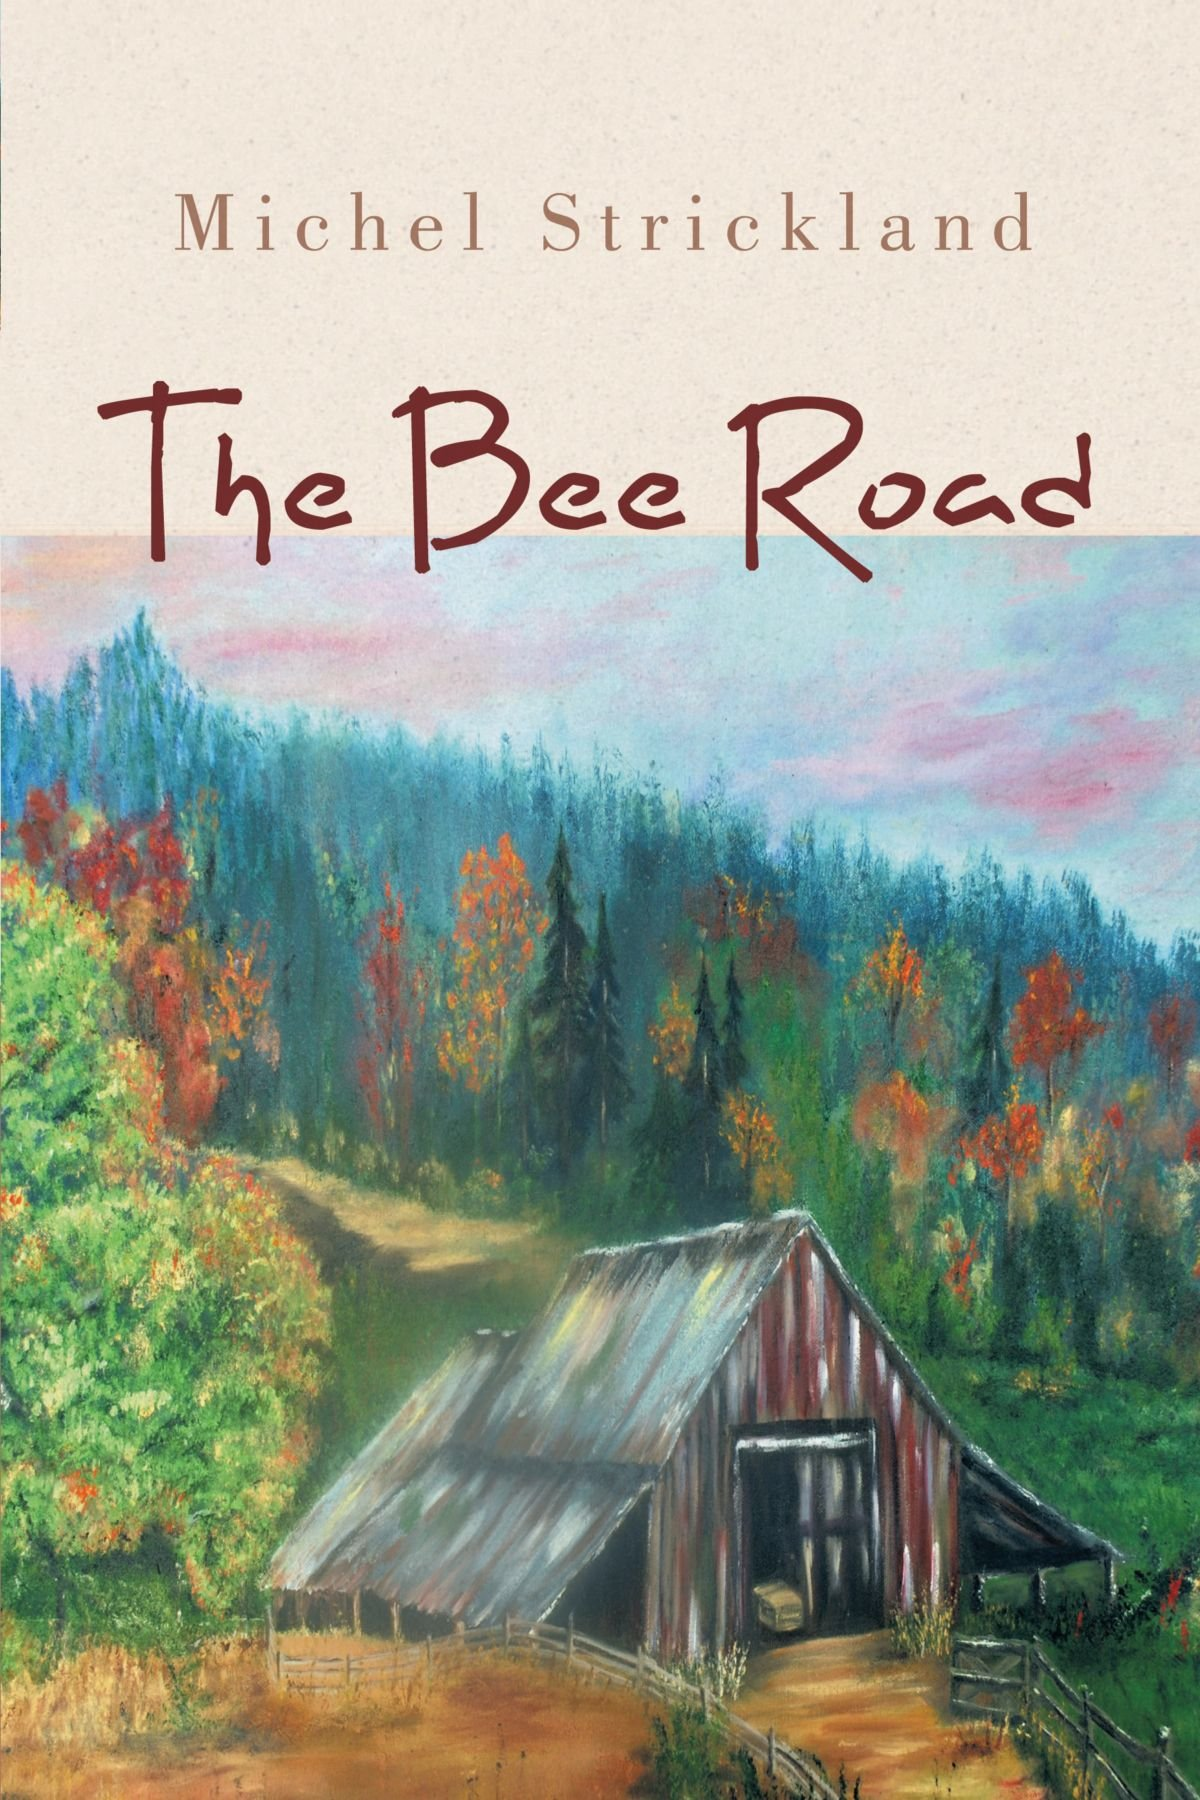 The Bee Road – share the journey of Grace and Georgiana on a journey that will change both of their lives forever-one that will test their stamina, their determination, and their ability to believe.